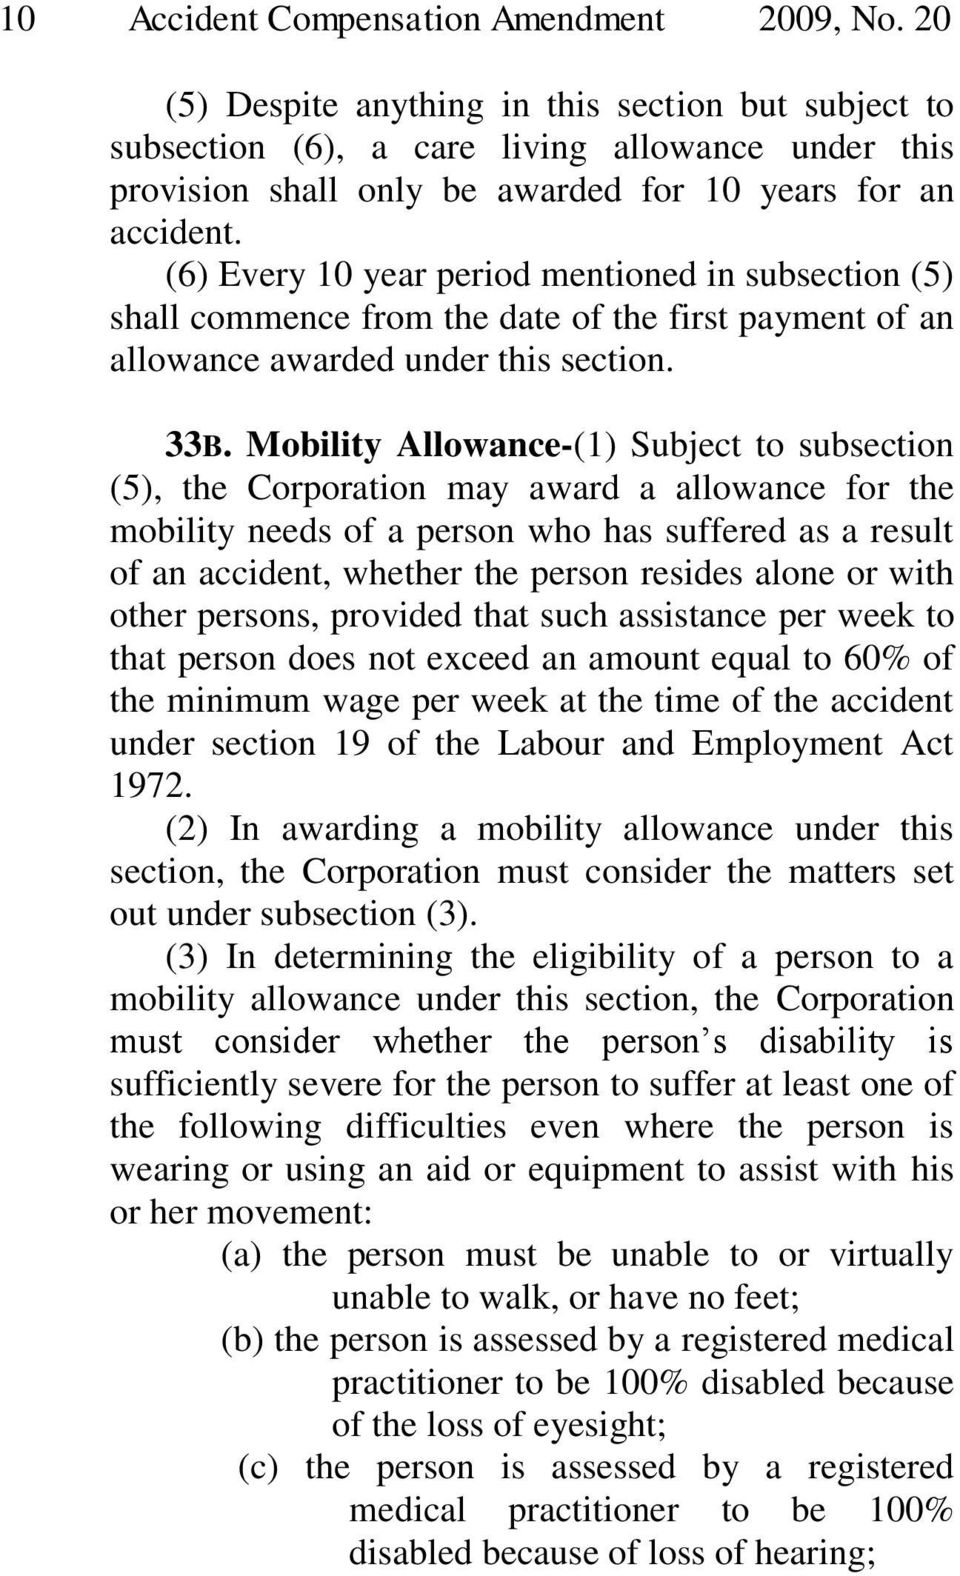 (6) Every 10 year period mentioned in subsection (5) shall commence from the date of the first payment of an allowance awarded under this section. 33B.